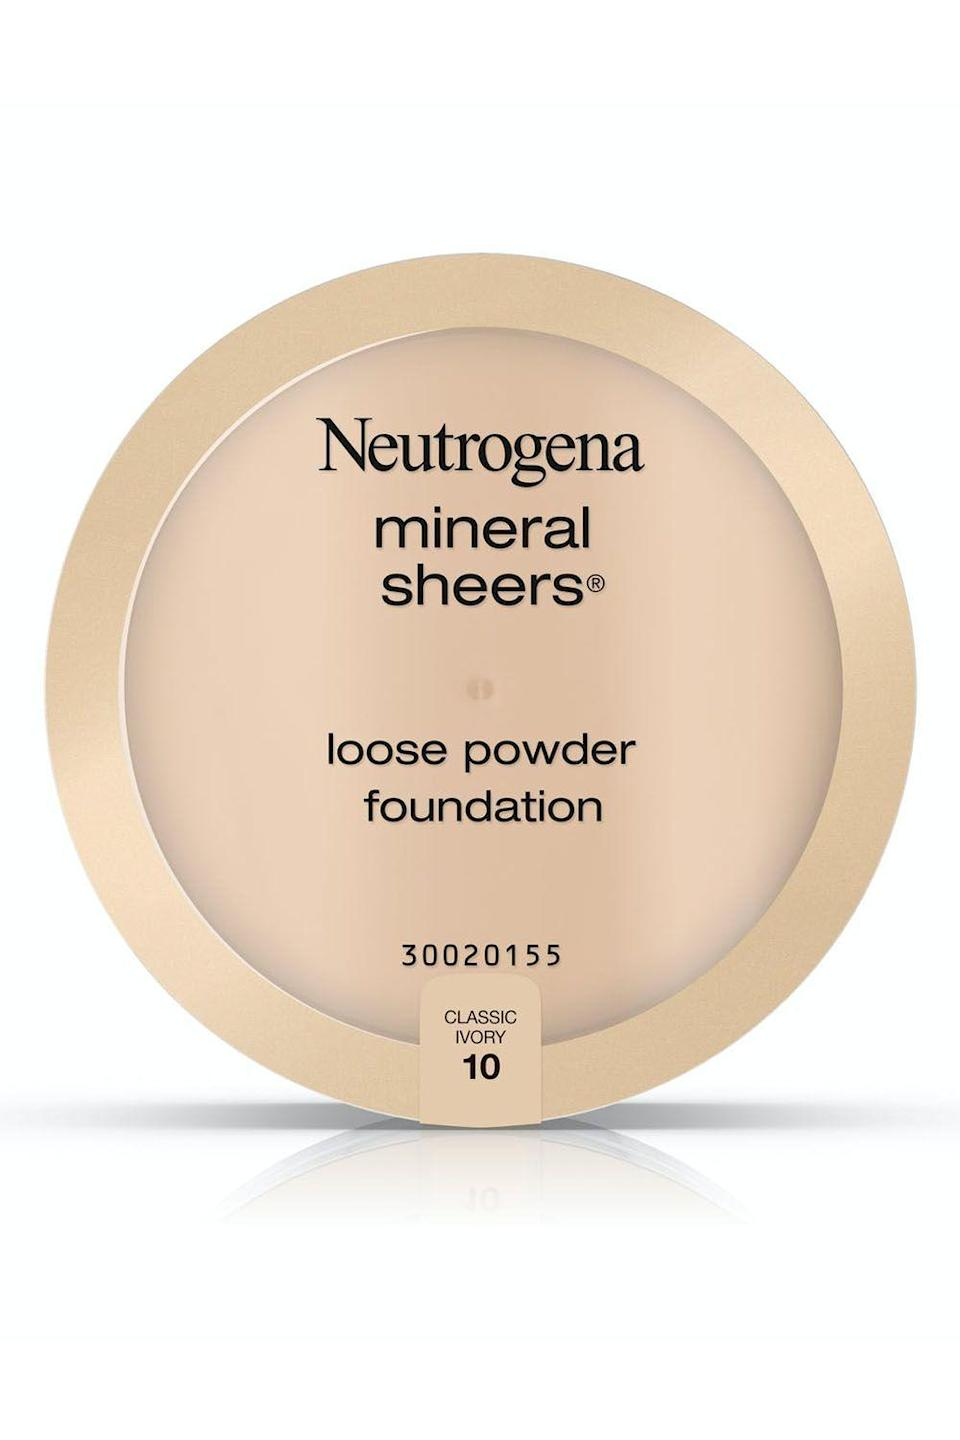 """<p><strong>Neutrogena</strong></p><p>target.com</p><p><strong>$9.39</strong></p><p><a href=""""https://www.target.com/p/-/A-15658595"""" rel=""""nofollow noopener"""" target=""""_blank"""" data-ylk=""""slk:Shop Now"""" class=""""link rapid-noclick-resp"""">Shop Now</a></p><p>Yes, even your sensitive bb skin can handle a setting powder—you just have to find the right one. Enter, this drugstore setting powder: It's <strong>free of a lot of the ingredients that can stress out your skin </strong>(including fragrance and sulfates), and it also protects it from damage (thanks to antioxidants like <a href=""""https://www.cosmopolitan.com/style-beauty/beauty/a27609307/vitamin-e-for-skin-benefits-products/"""" rel=""""nofollow noopener"""" target=""""_blank"""" data-ylk=""""slk:vitamins E"""" class=""""link rapid-noclick-resp"""">vitamins E</a> and C). </p>"""